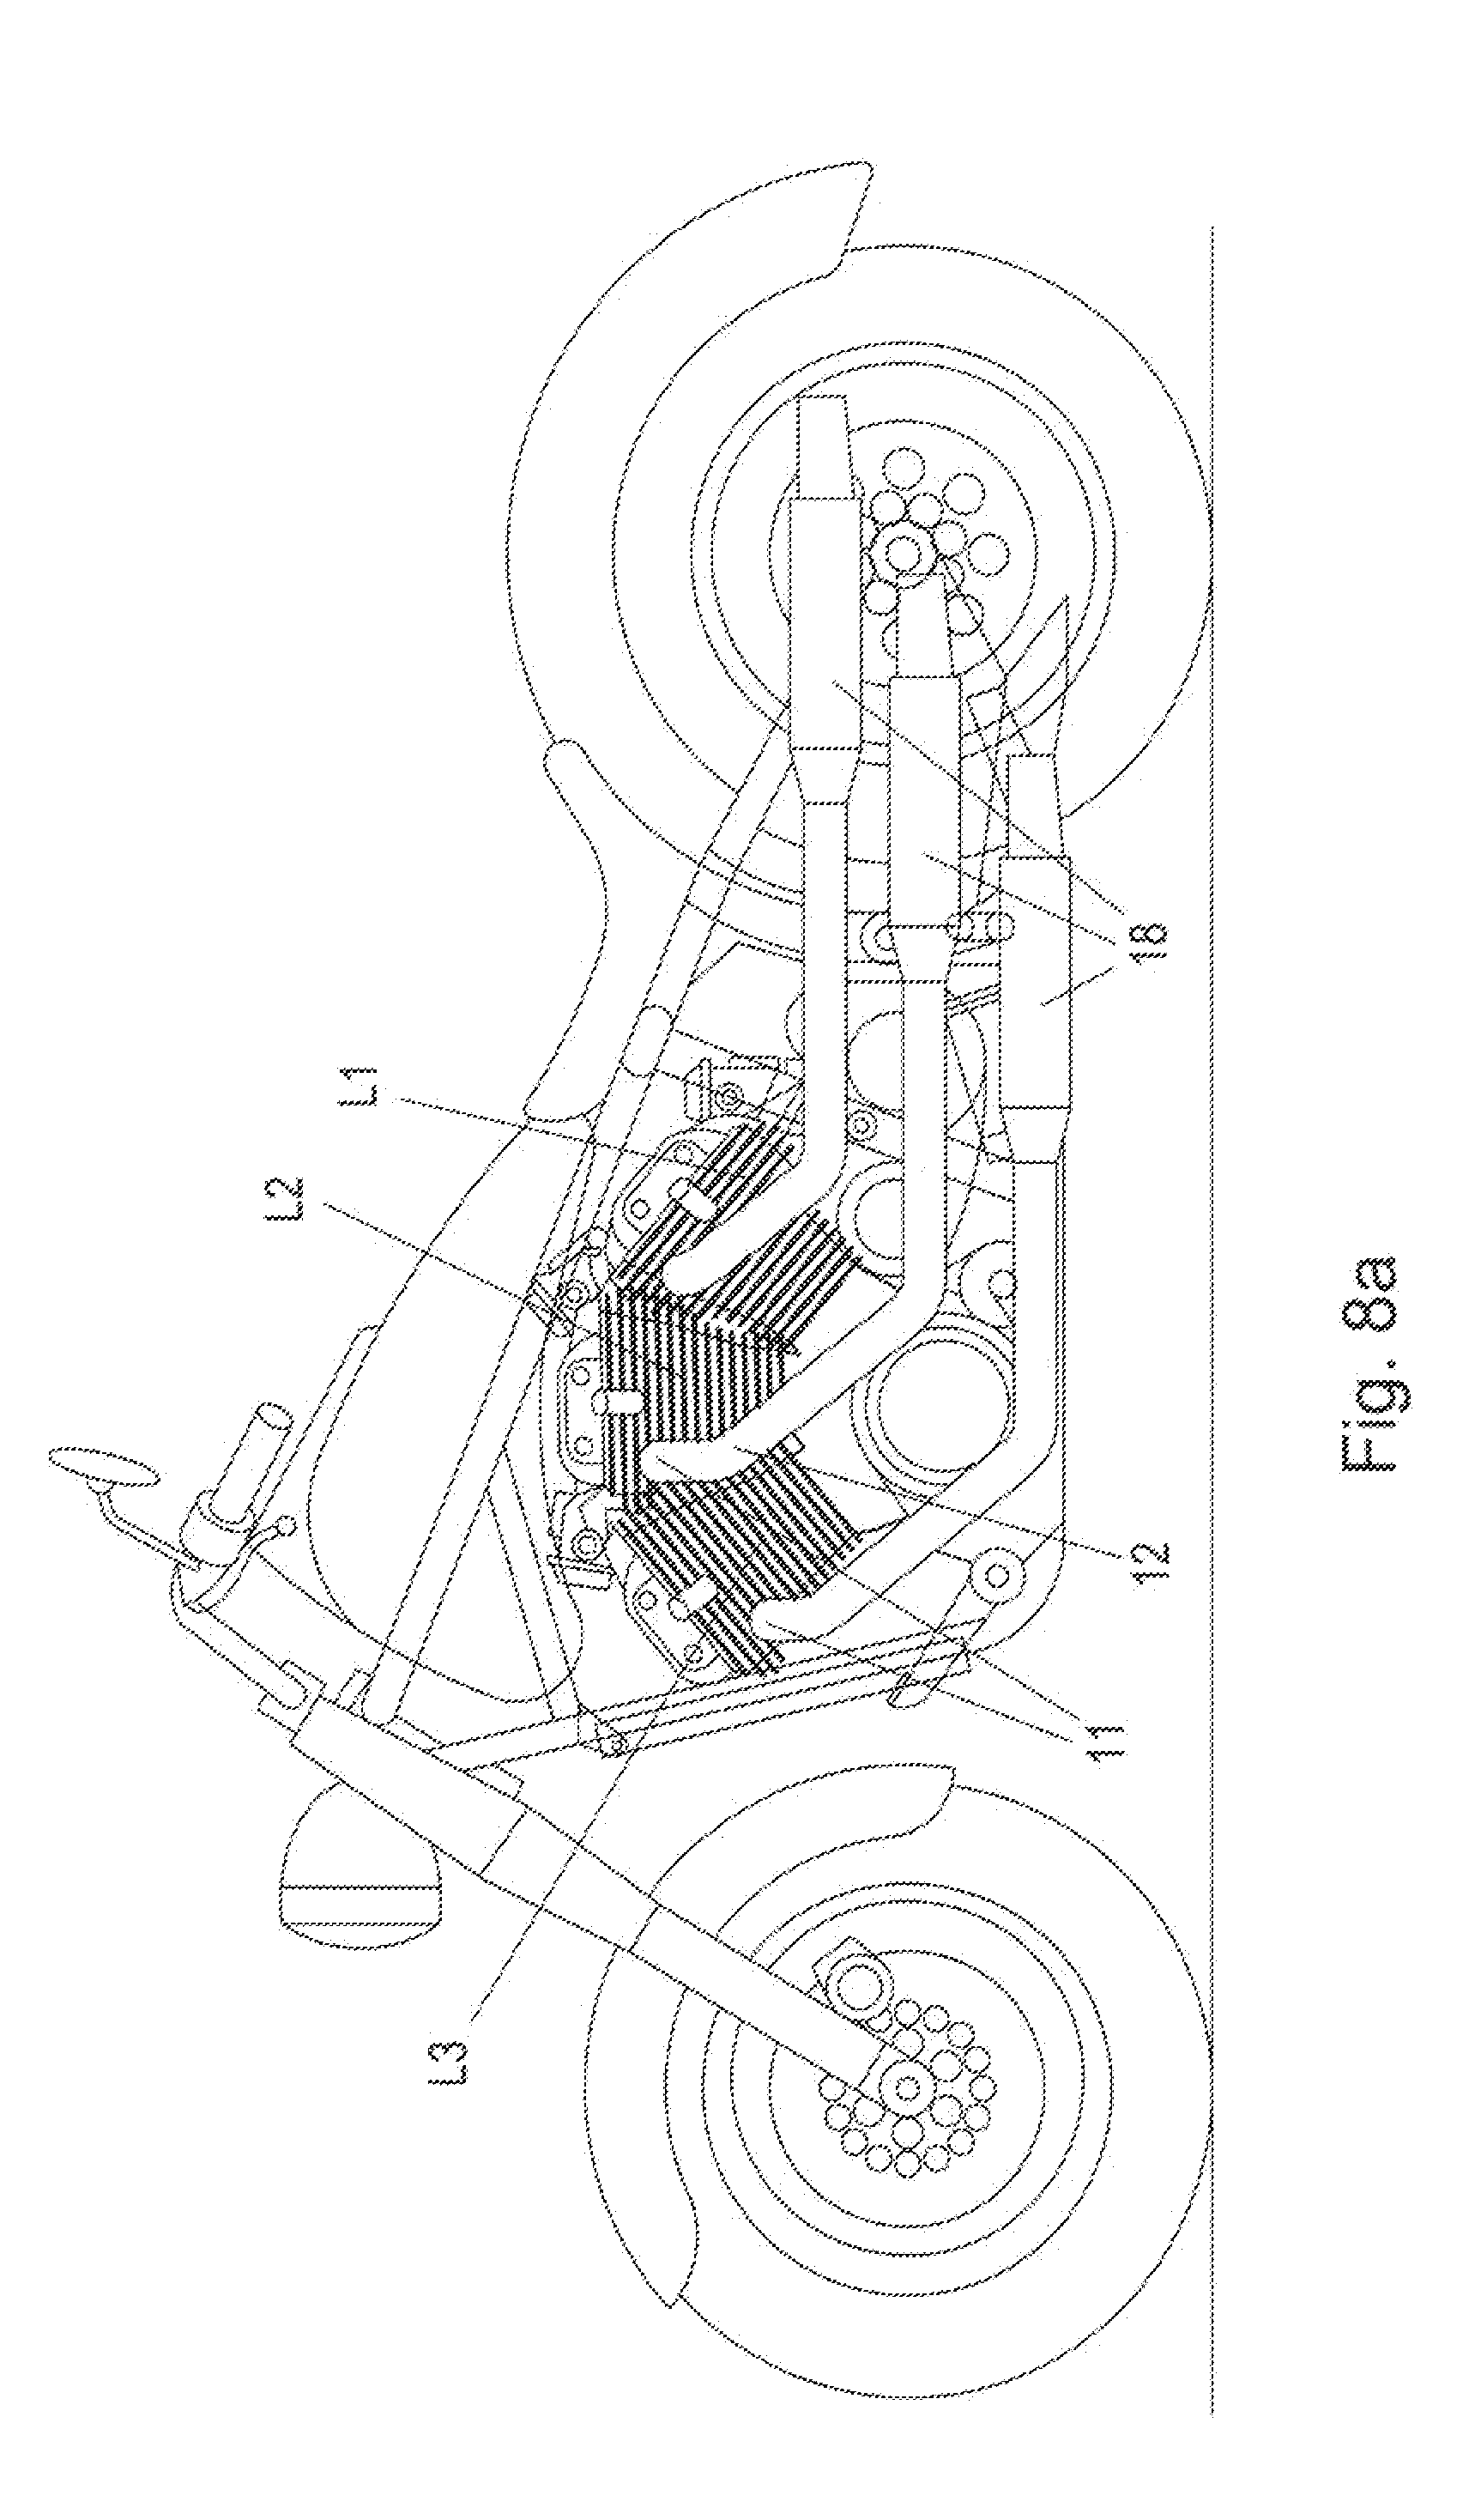 Patente Us20130220246 W6 Motor Google Patentes Kawasaki W800 Wiring Diagram Patent Drawing